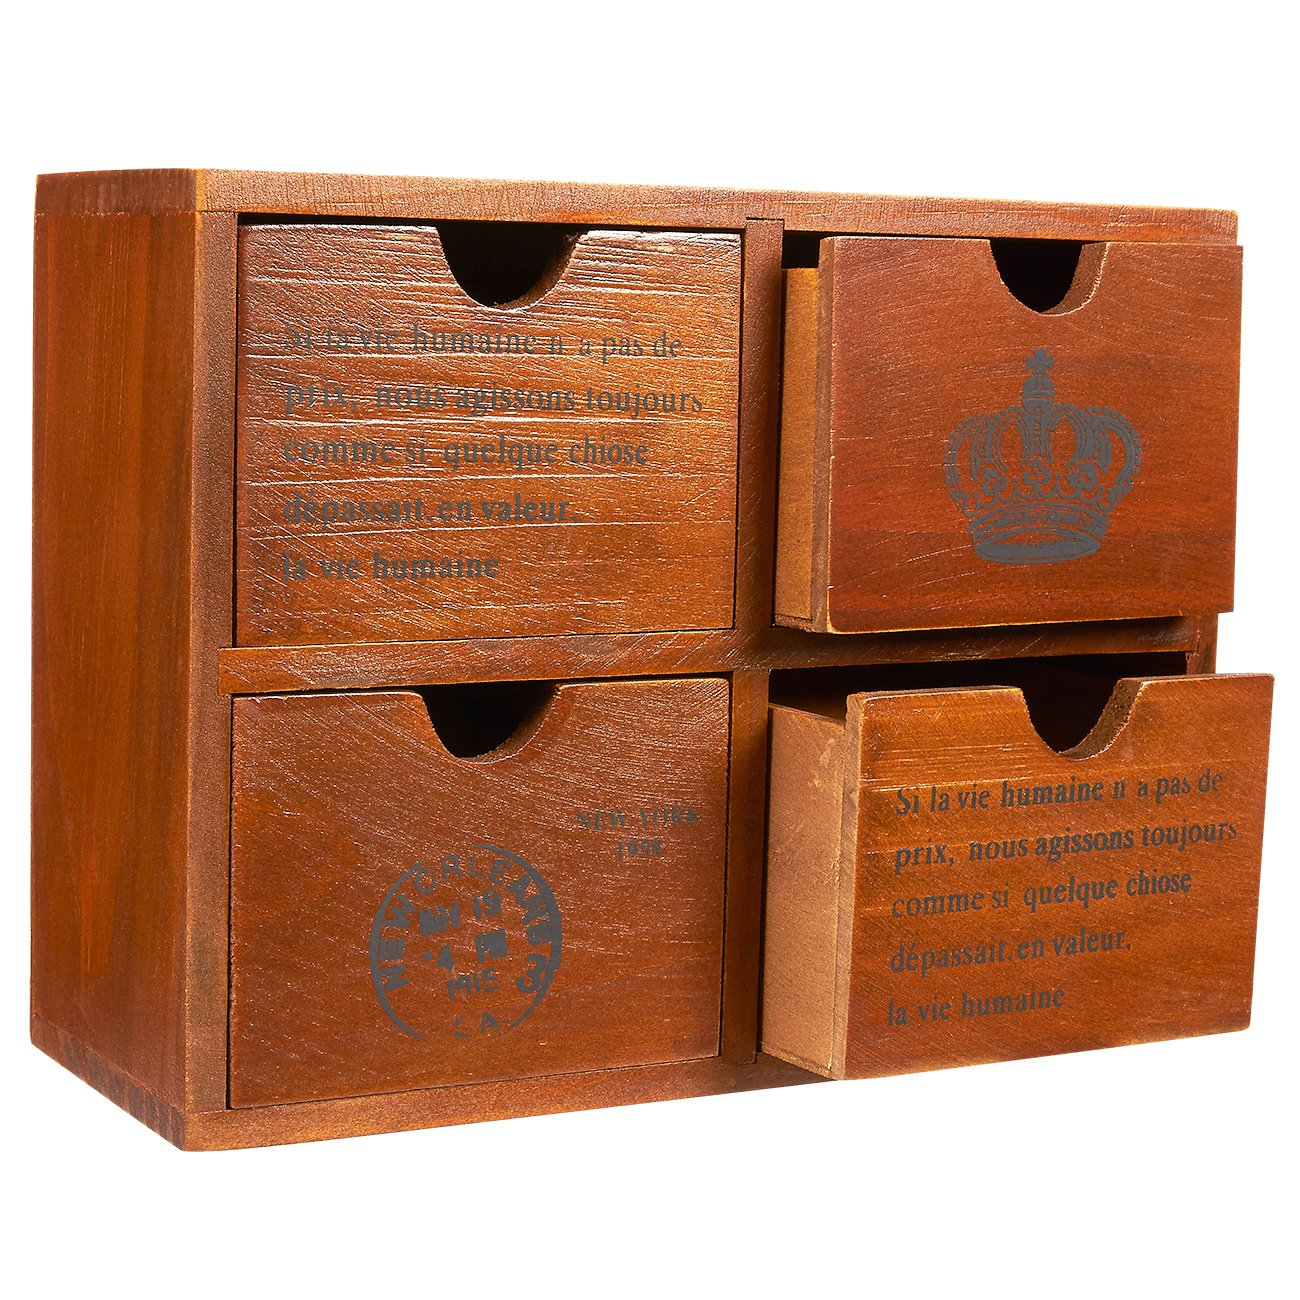 Organizer Holder Storage Drawers - Decorative Wooden Drawers with Chic French Design - 9.75 x 7 x 5 inches Juvale 4335523236